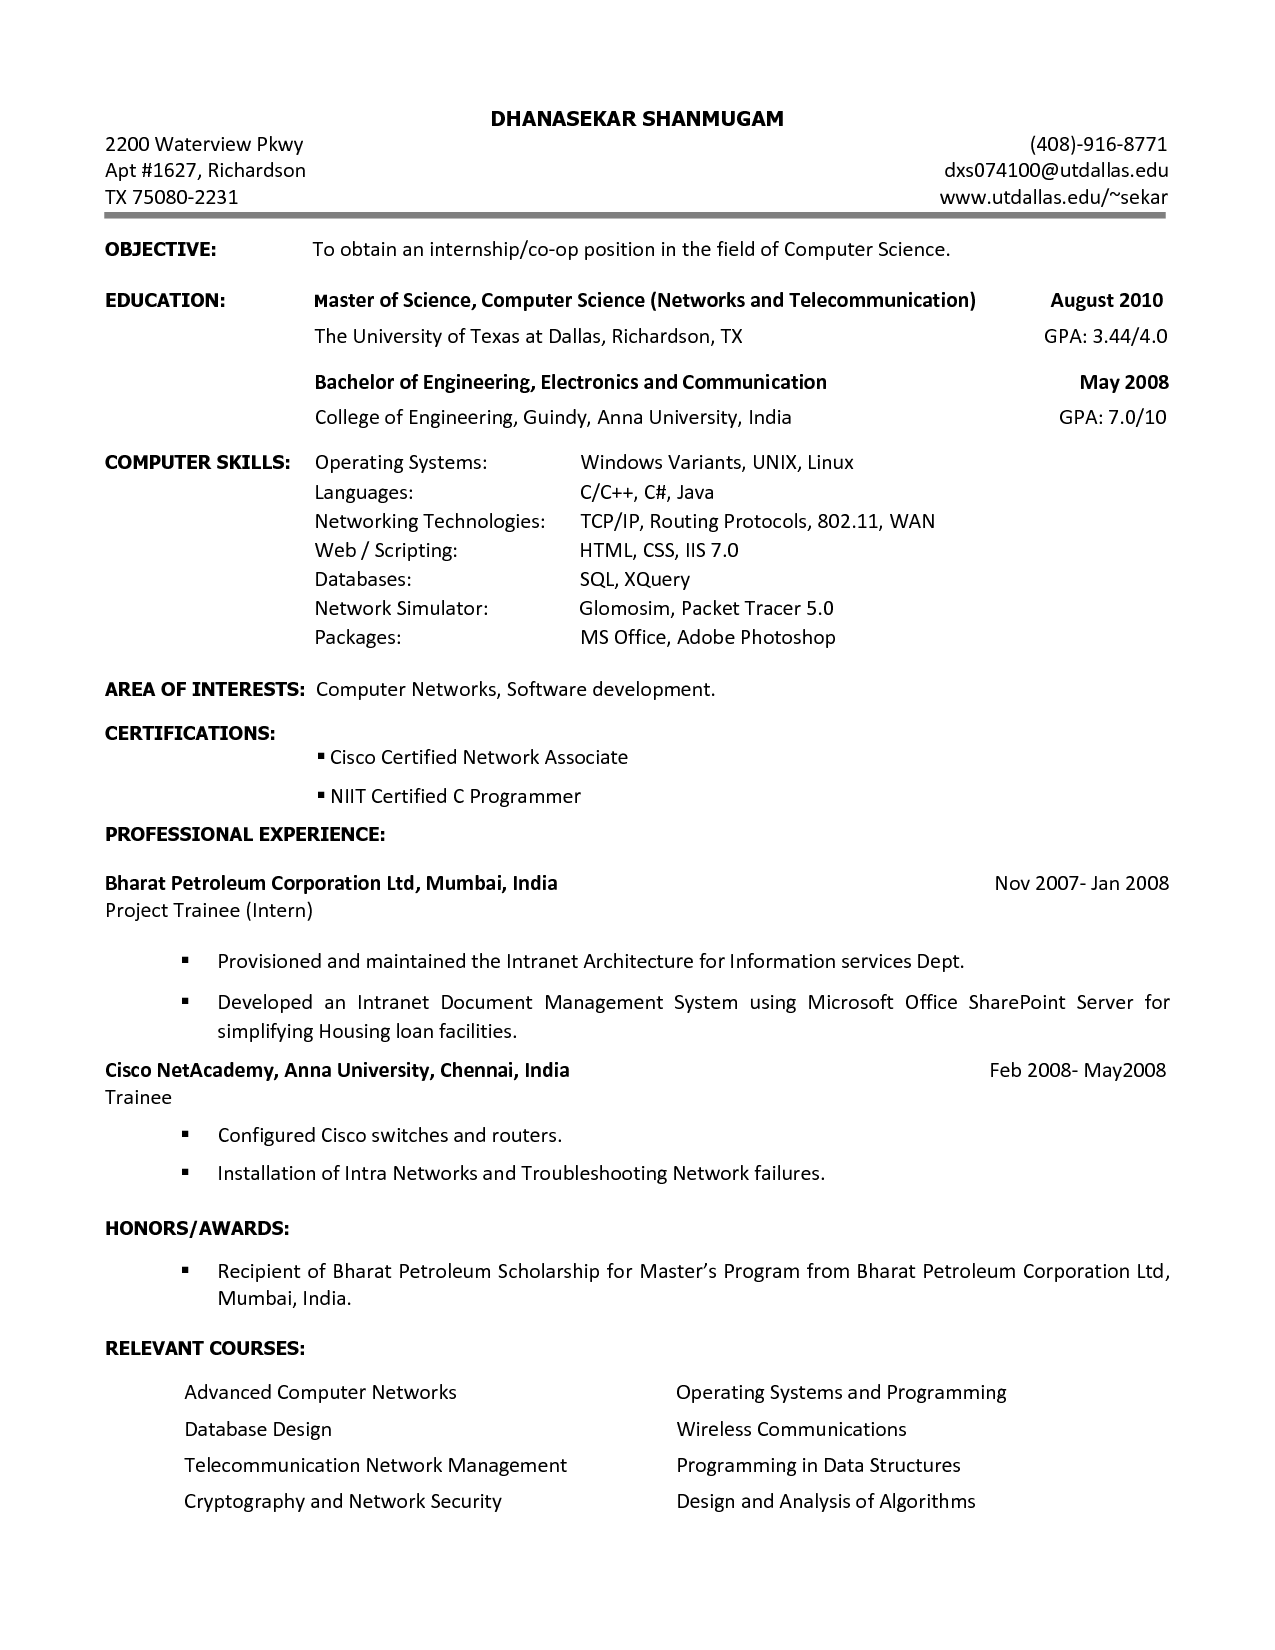 resume builder resume builder free download  free resume builder  resume templates  resume